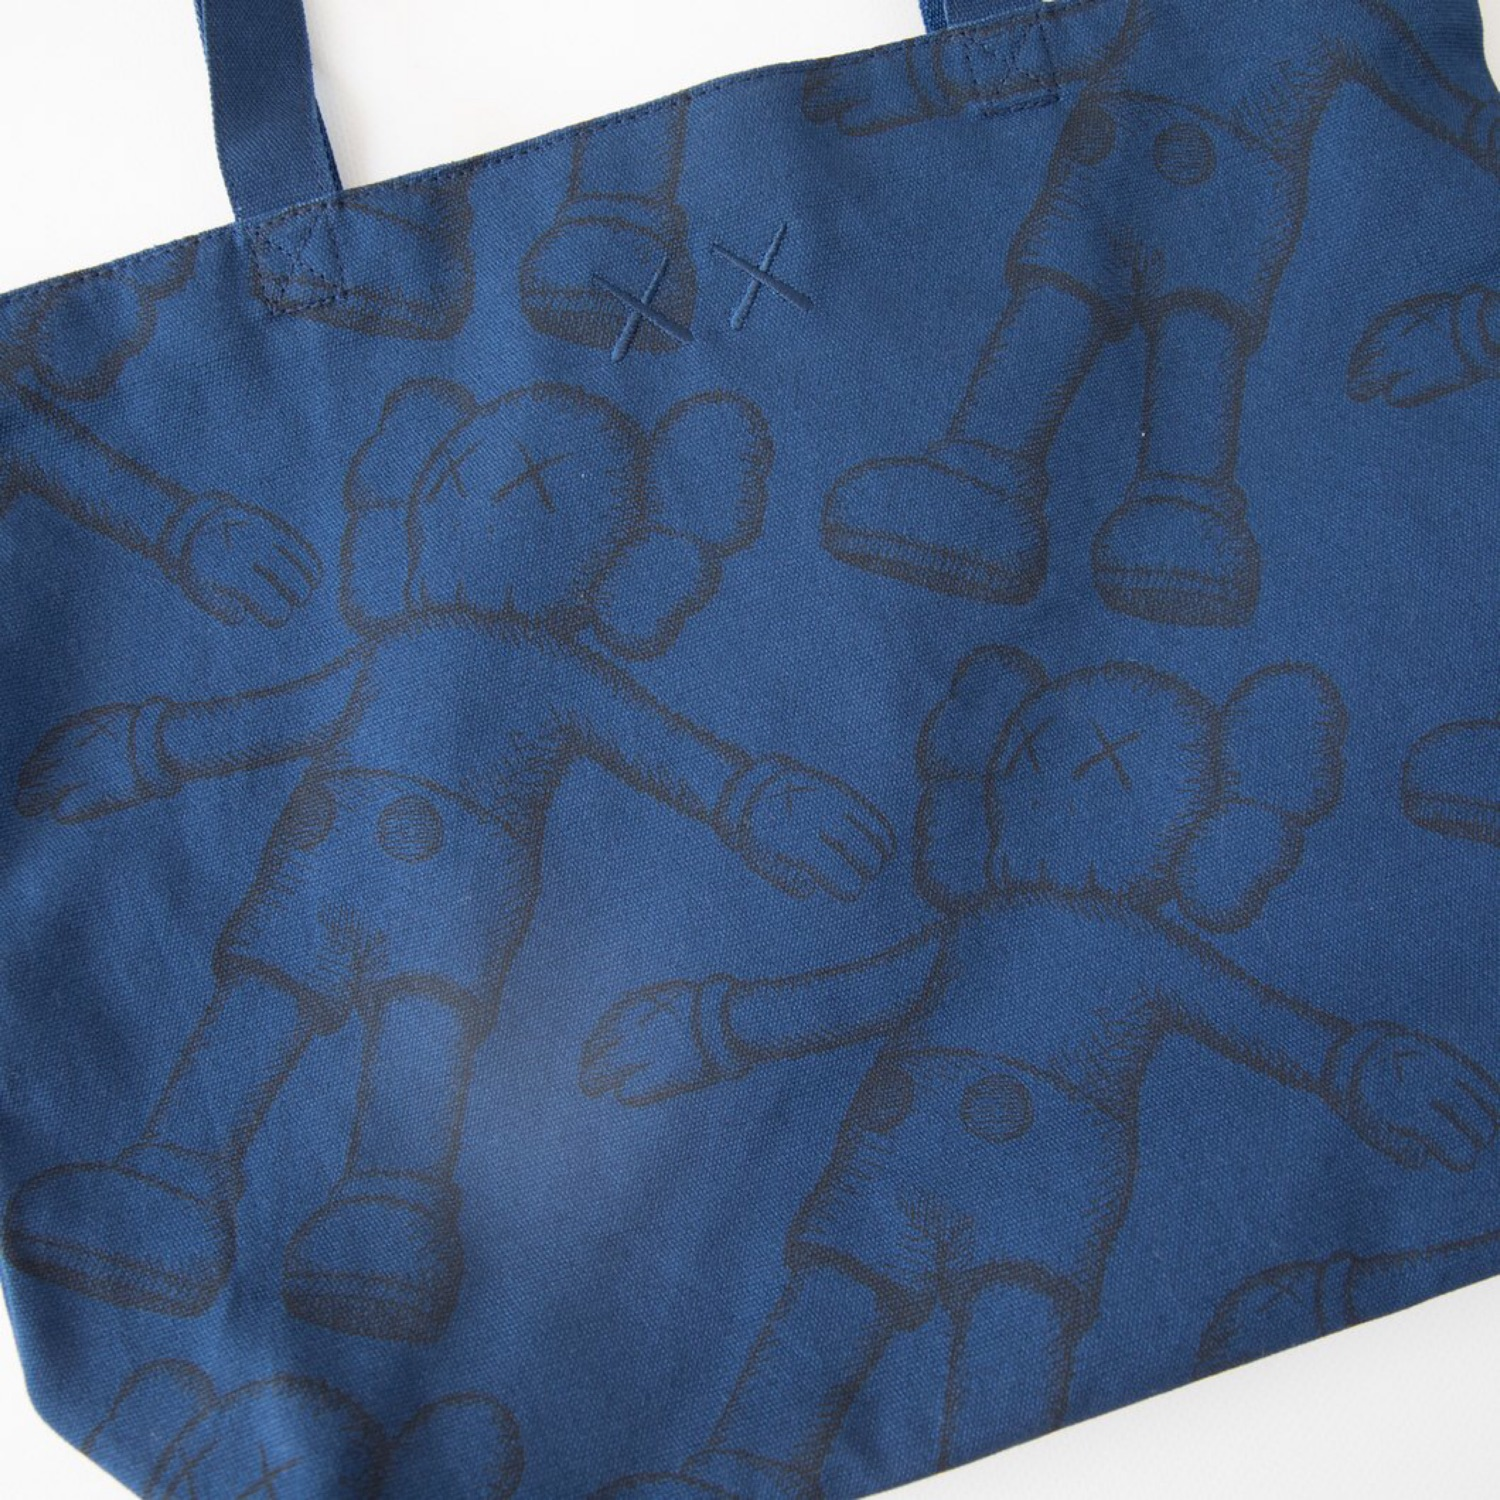 Kaws X Uniqlo Holiday Companion Tote Bag Blue (New